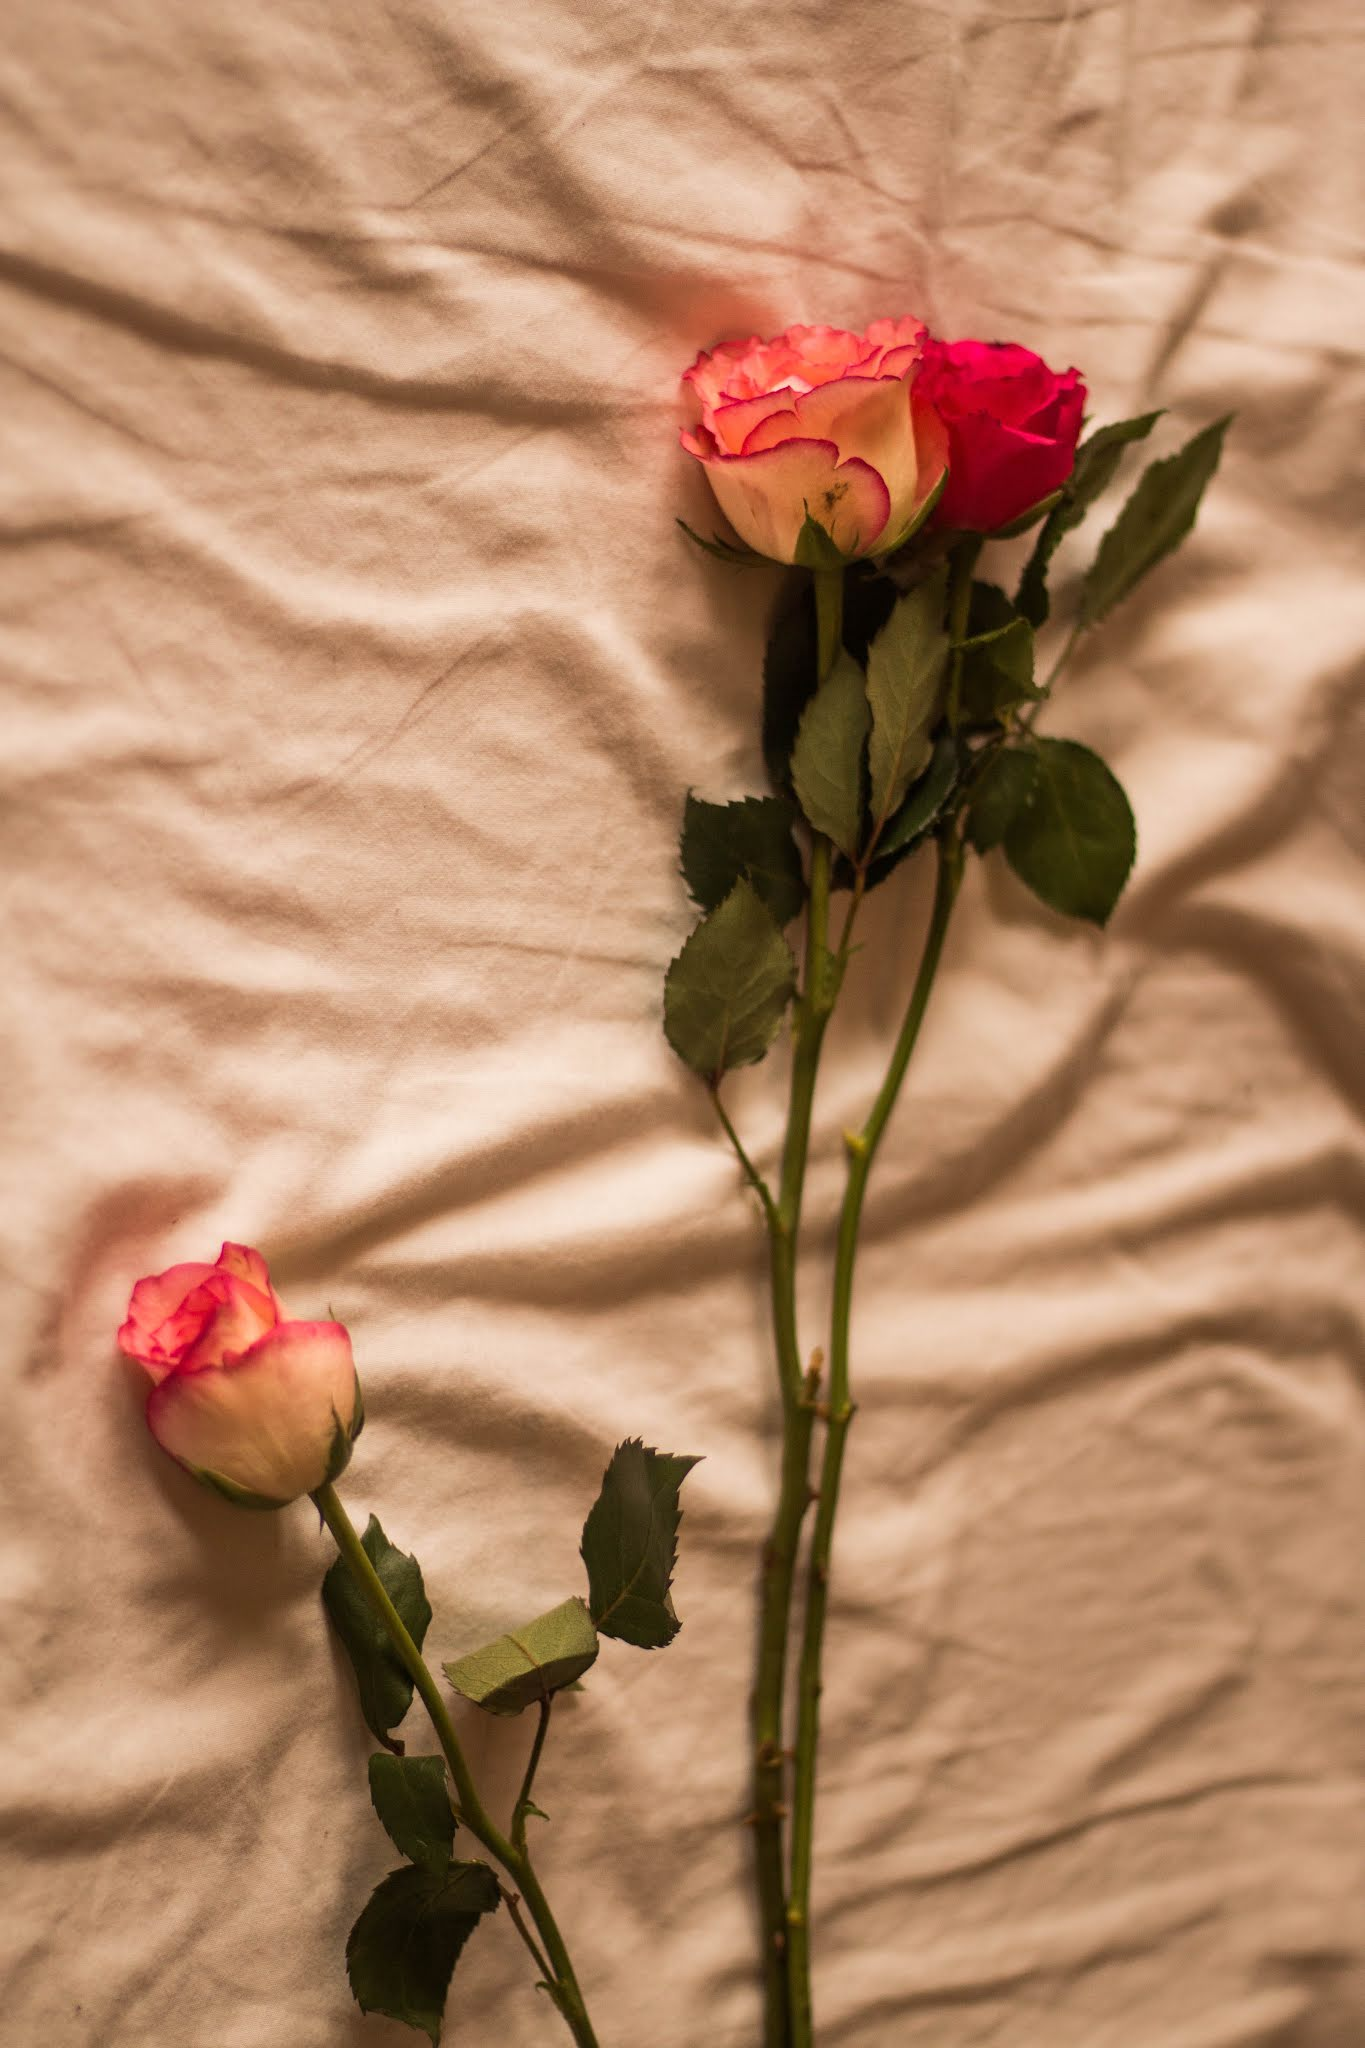 Roses on bedsheets - an outlook on love, valentines day blog post